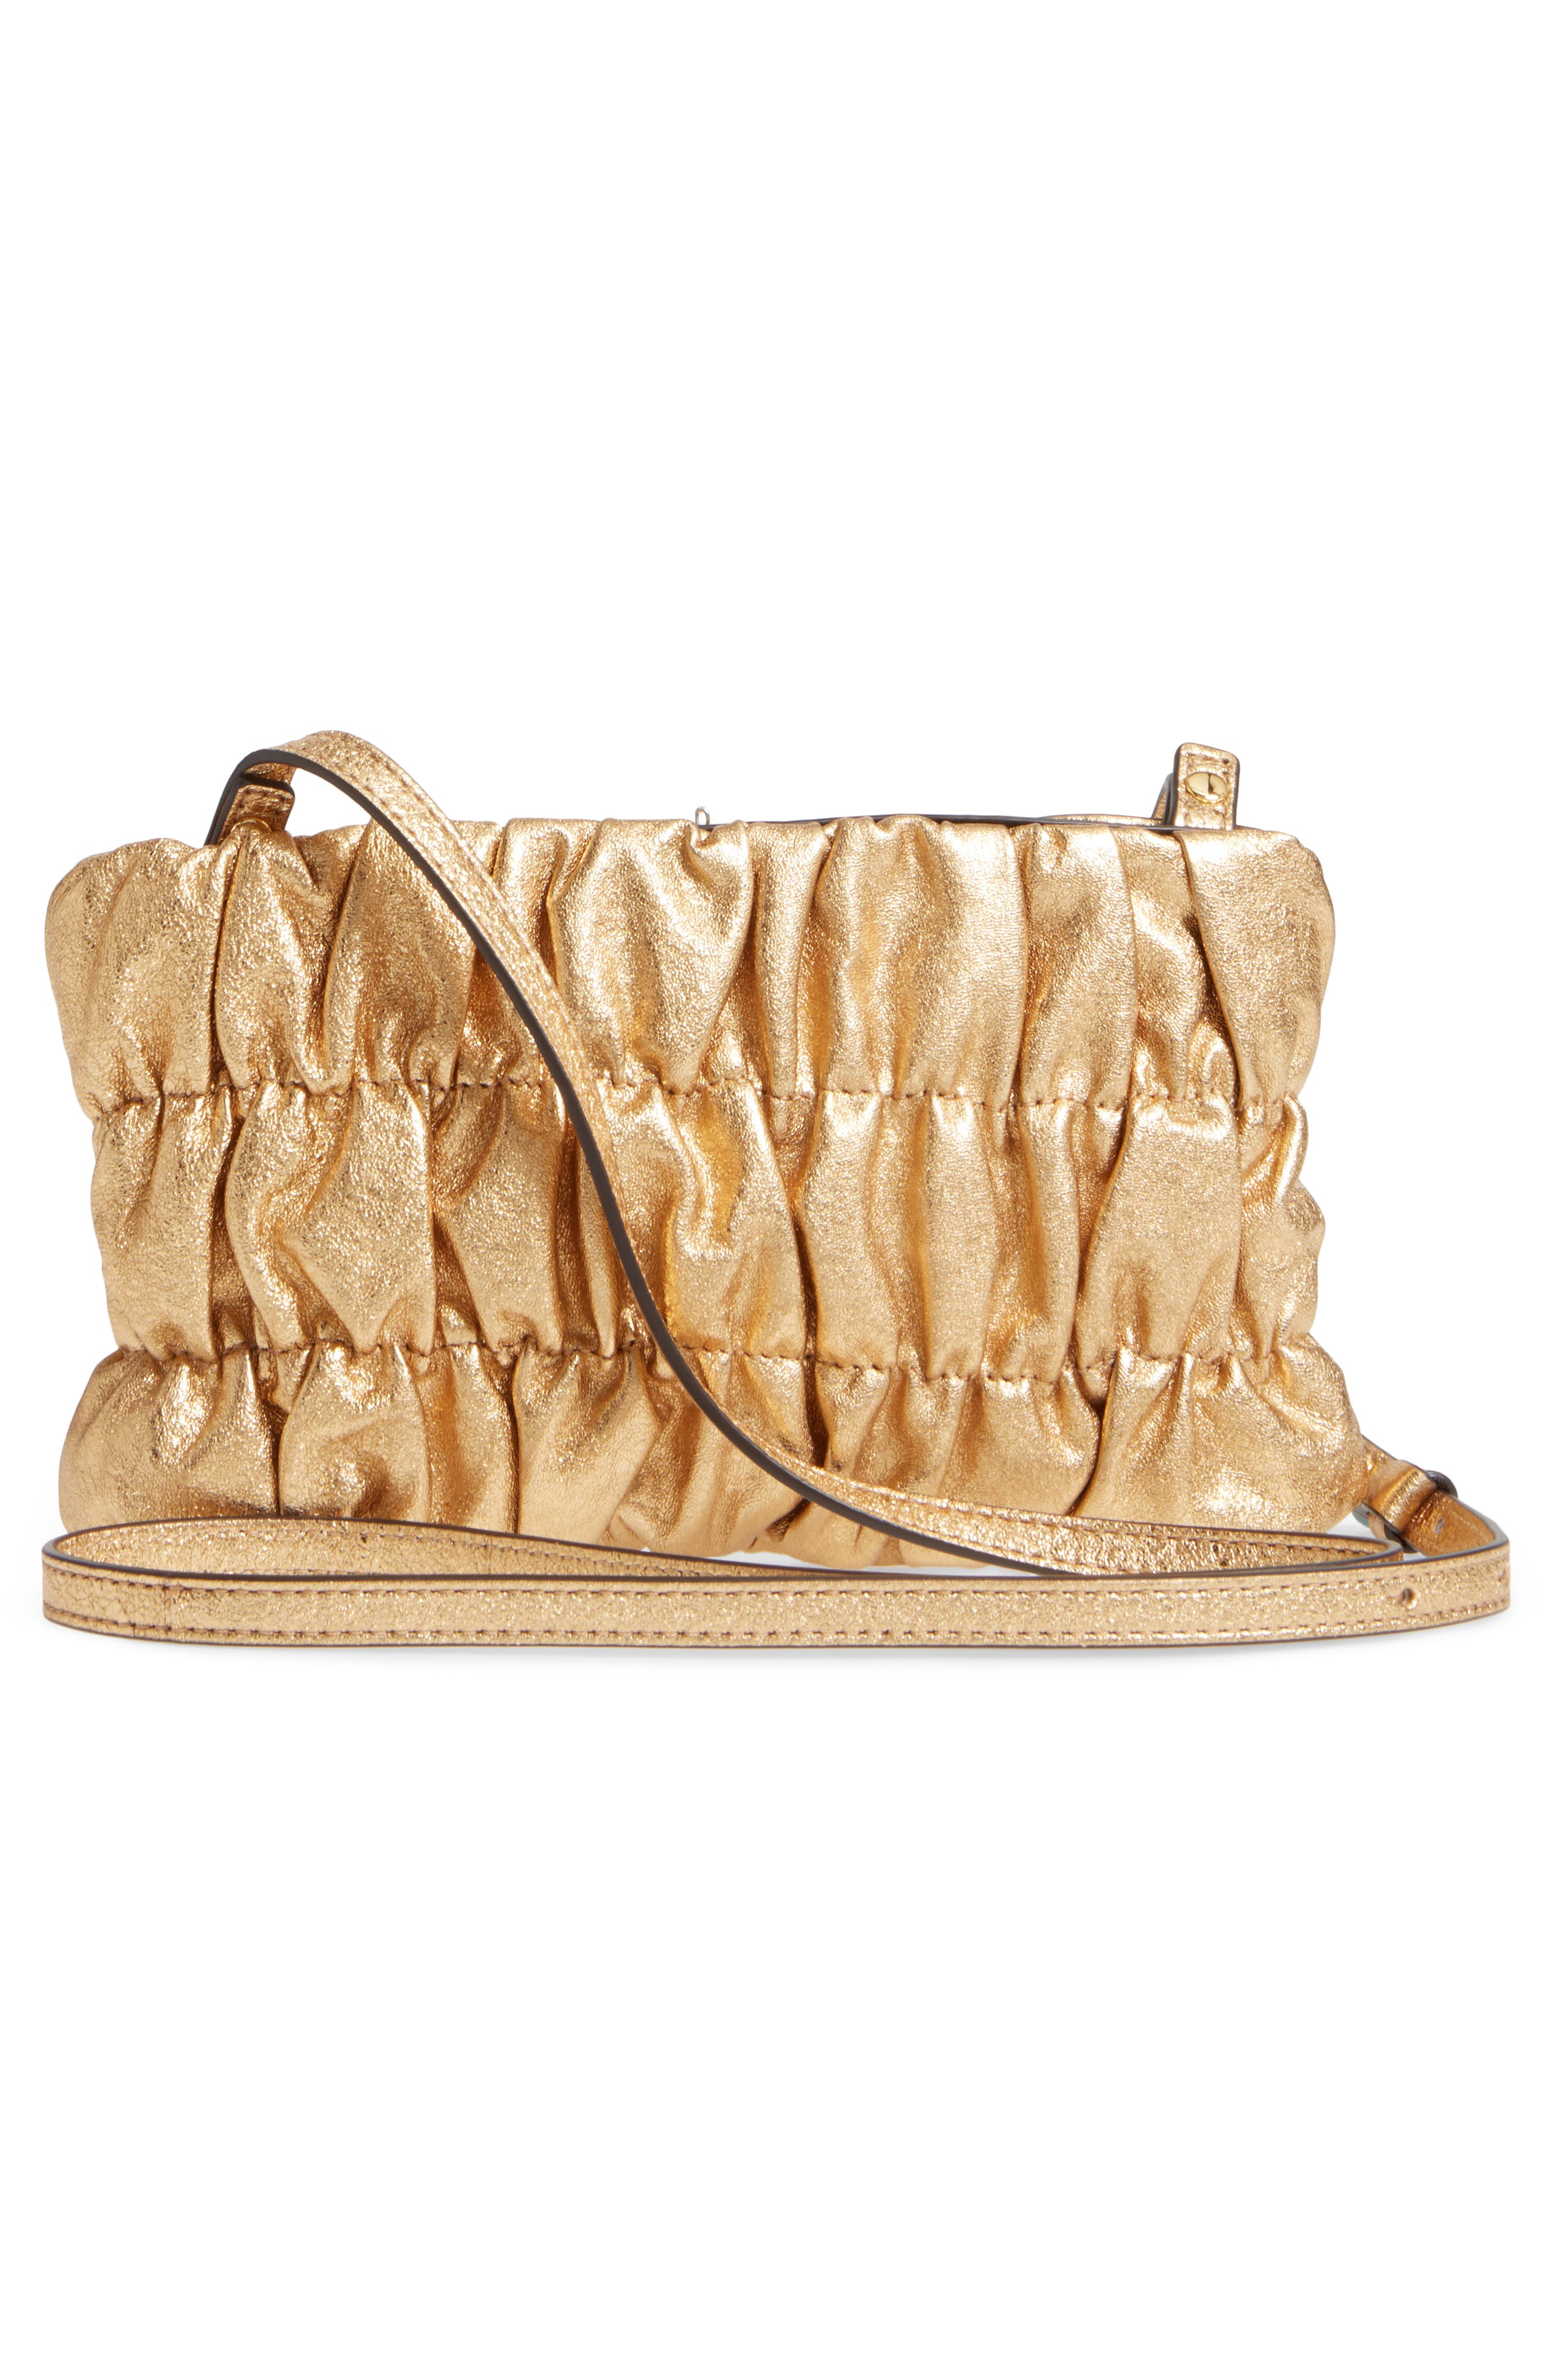 MICHAEL Michael Kors Webster Metallic Leather Clutch,                             Alternate thumbnail 3, color,                             Gold